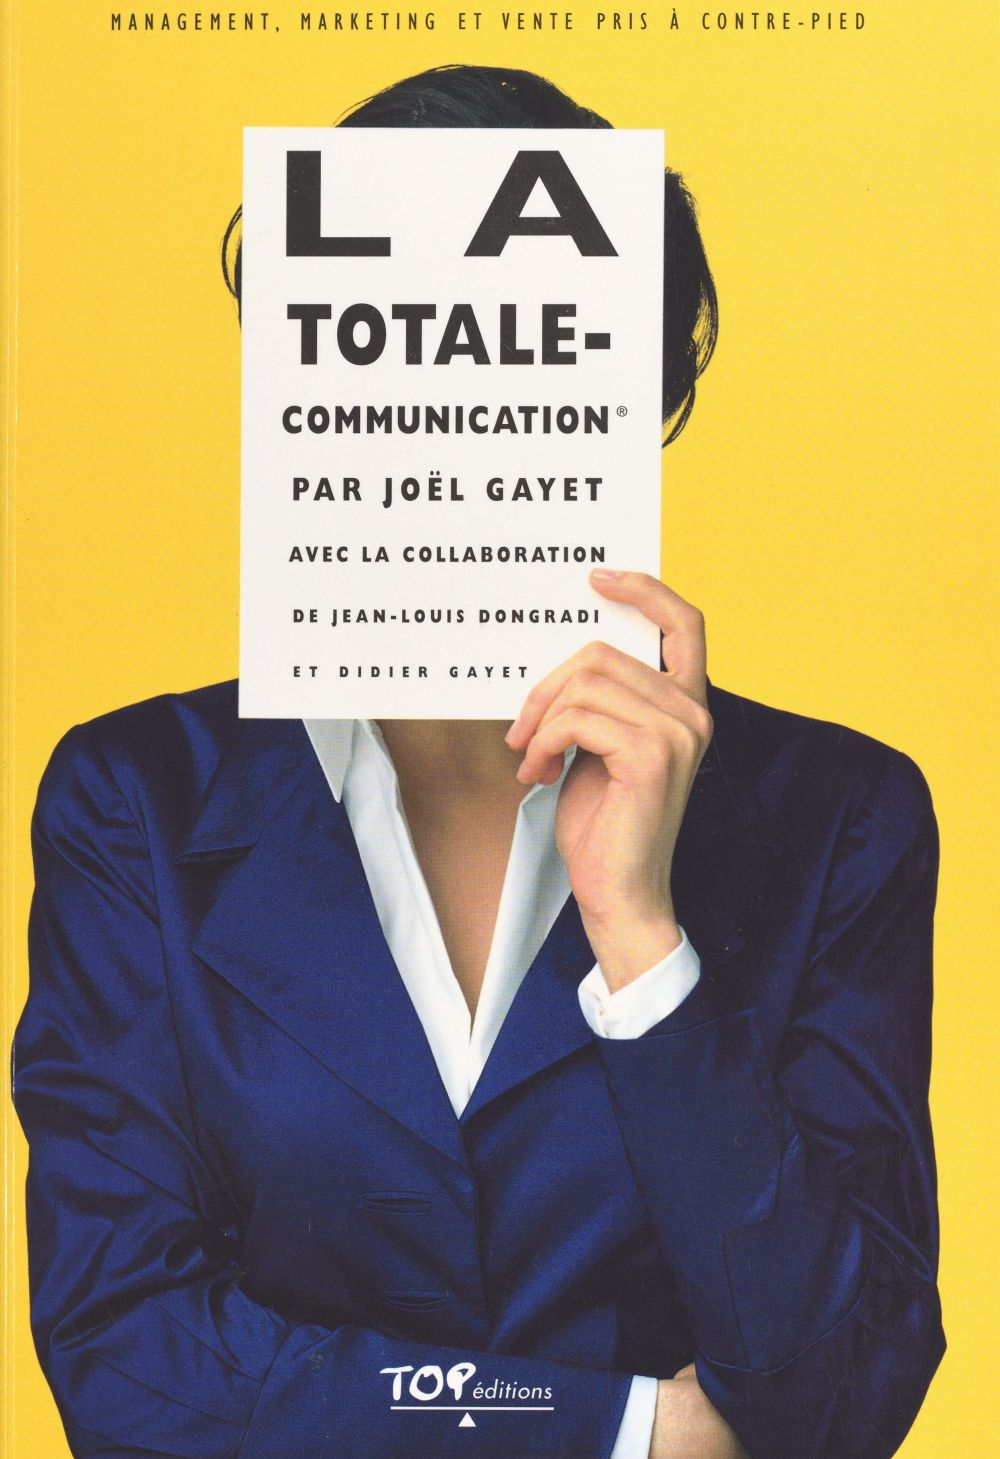 La totale-communication : management, marketing et vente pris à contre-pied